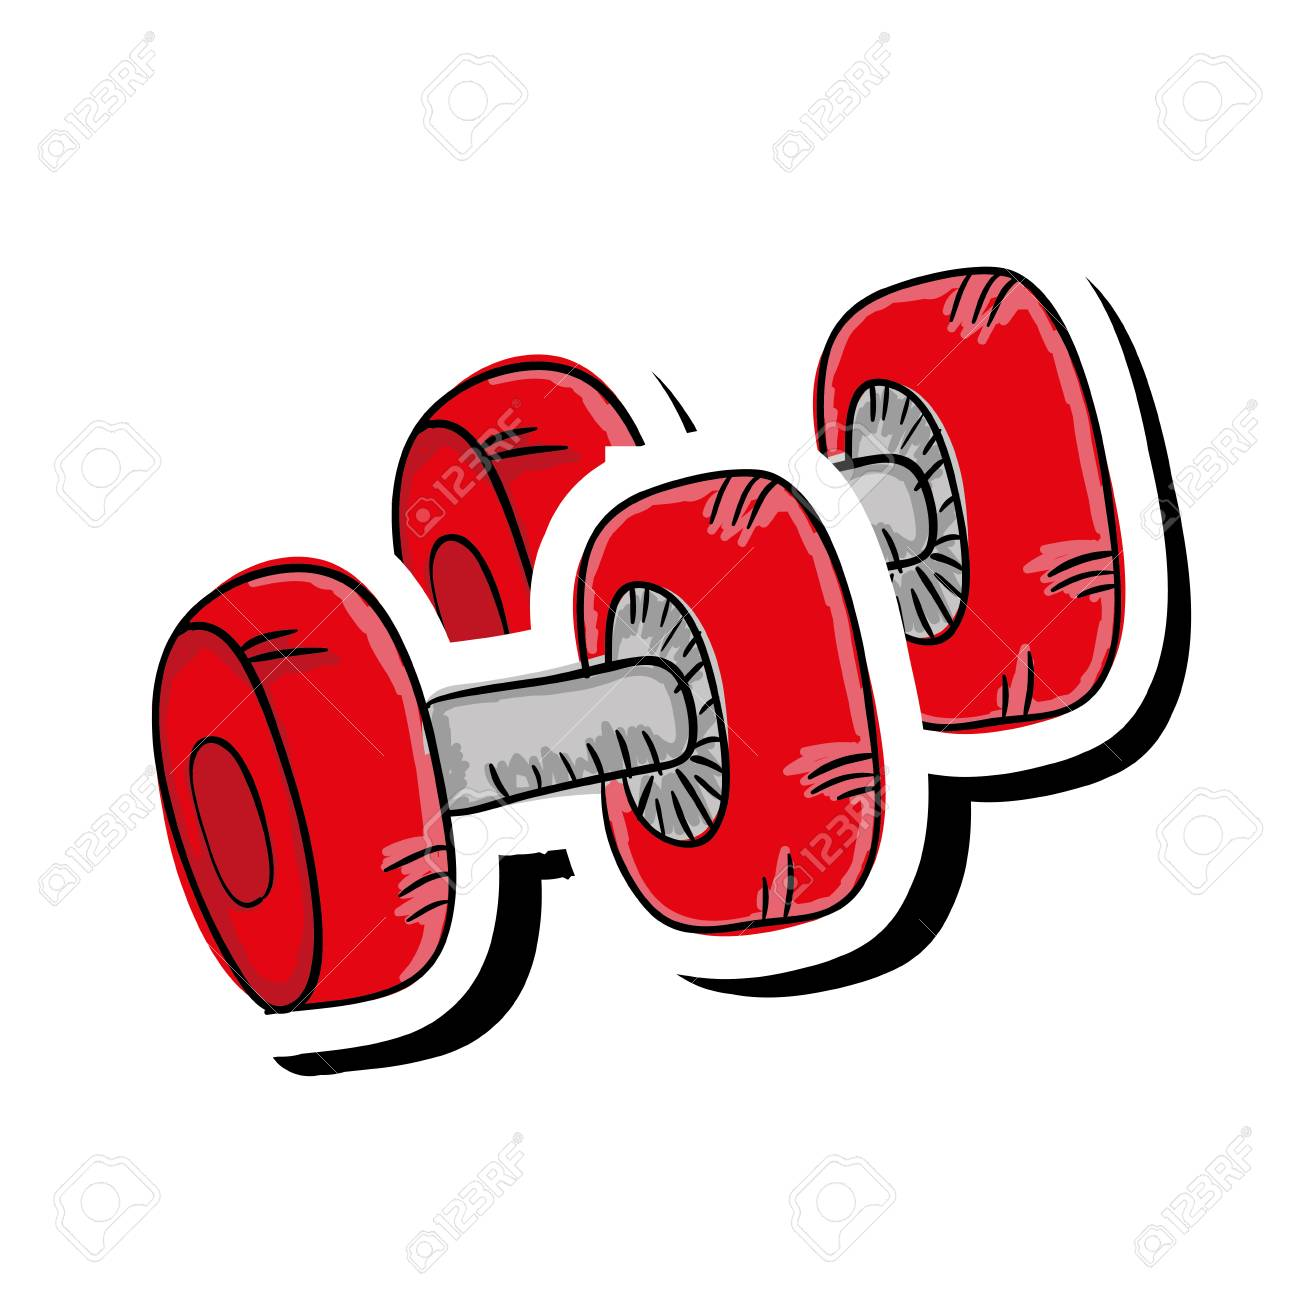 Red Dumbbell Gym Equipment Fitness Lifestyle Vector Illustration Royalty Free Cliparts Vectors And Stock Illustration Image 62576562